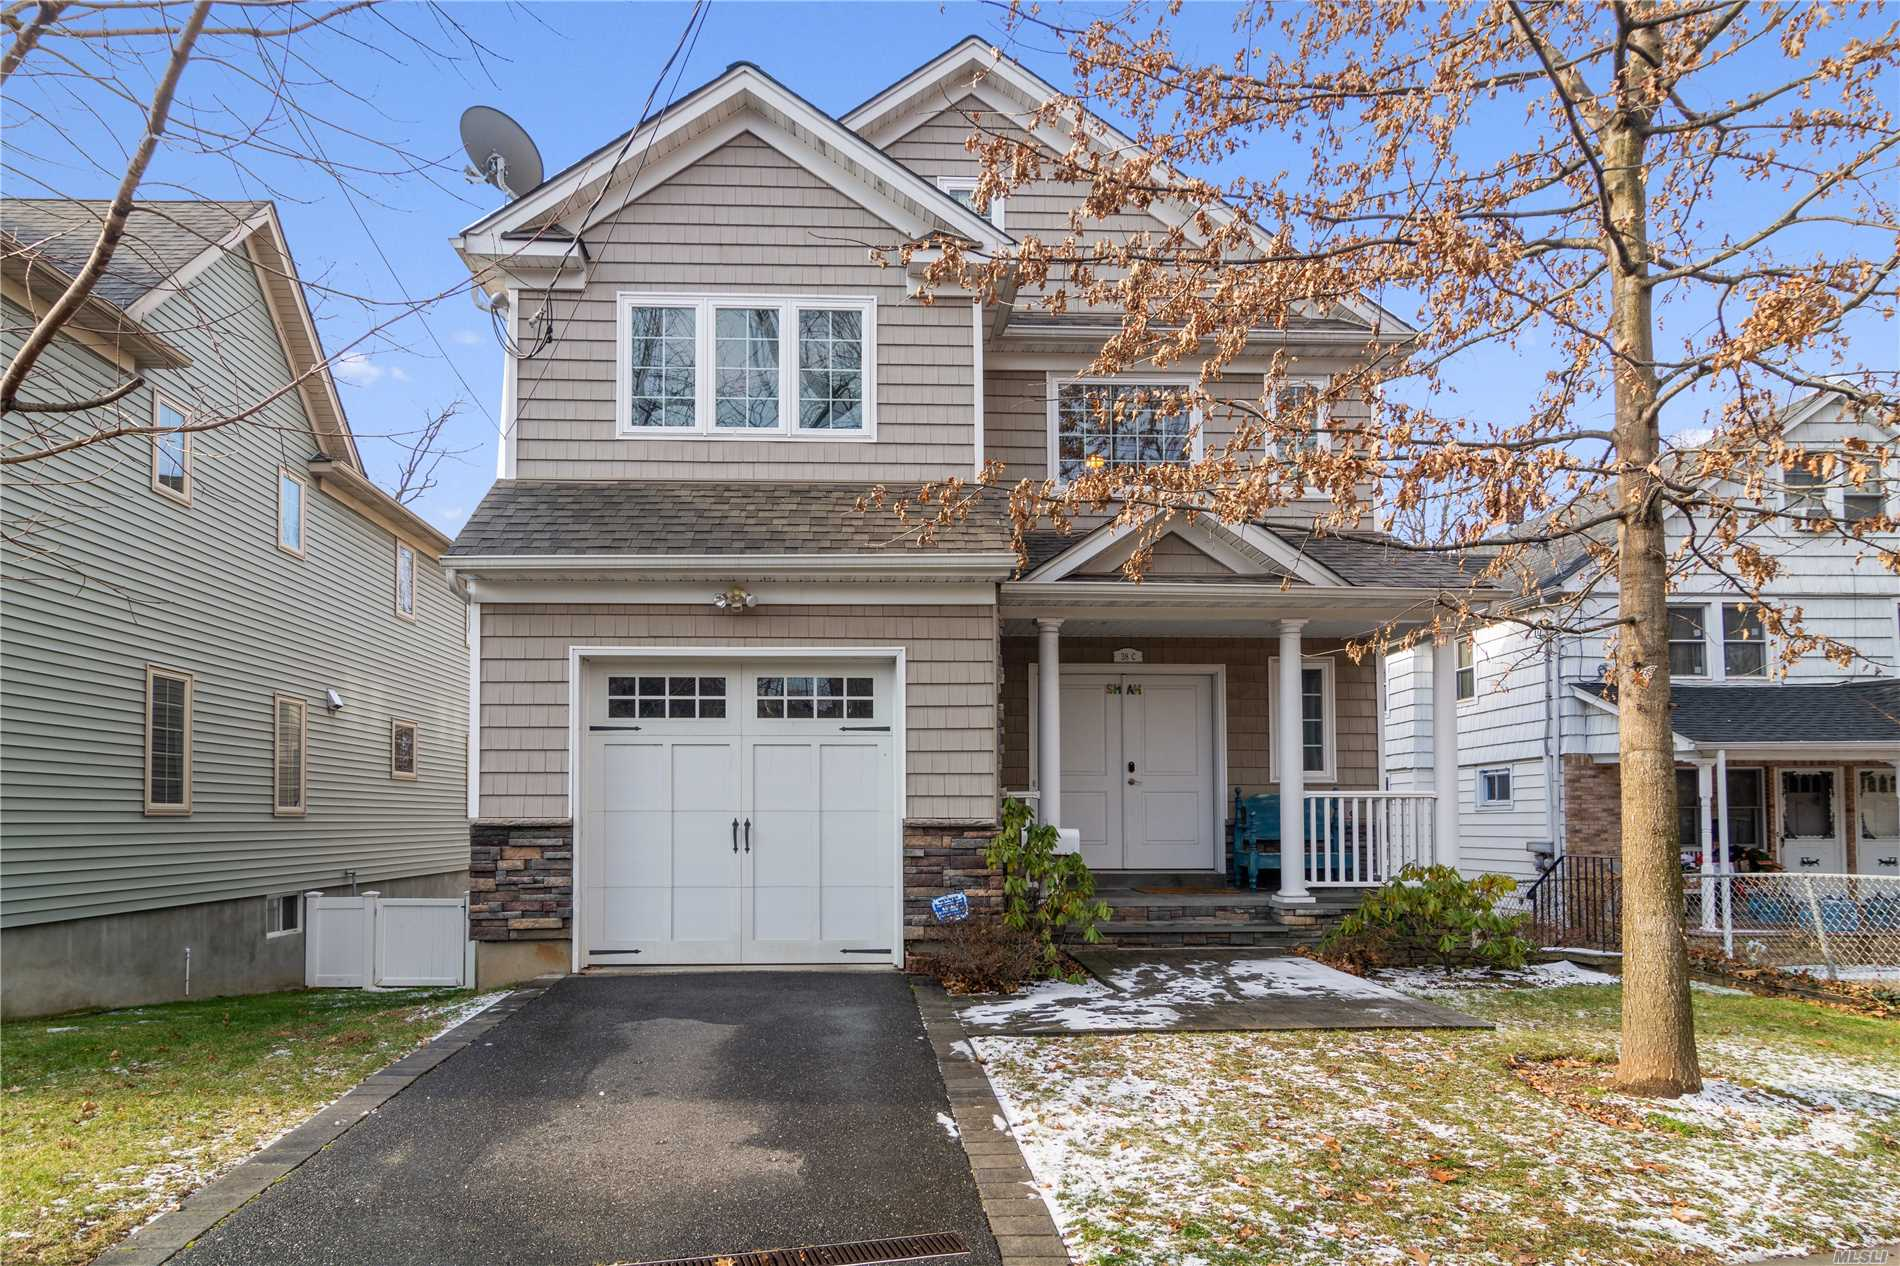 Just Like New, 8 Years Young Open Concept Colonial. This 4 Bedroom, 2.5 Bath Newly Constructed Home Features Sparkling, Top-Of-The-Line Eat-In Kitchen/Great Room, Living Room, Dining Room, Wood Floors Throughout. Private Property. Great Value!